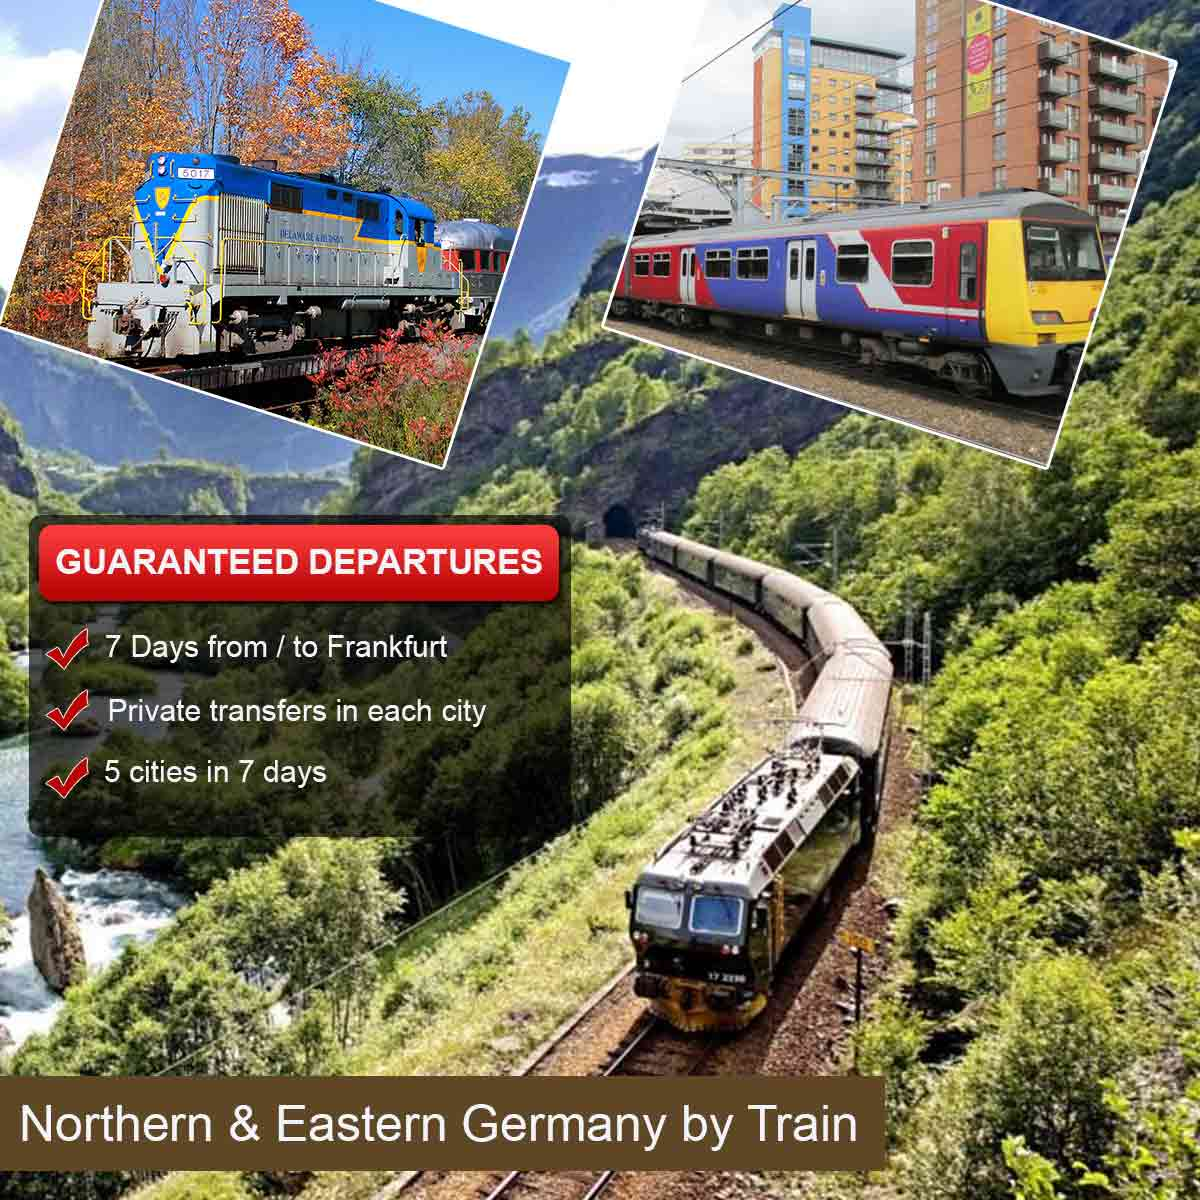 Northern & Eastern Germany by Train